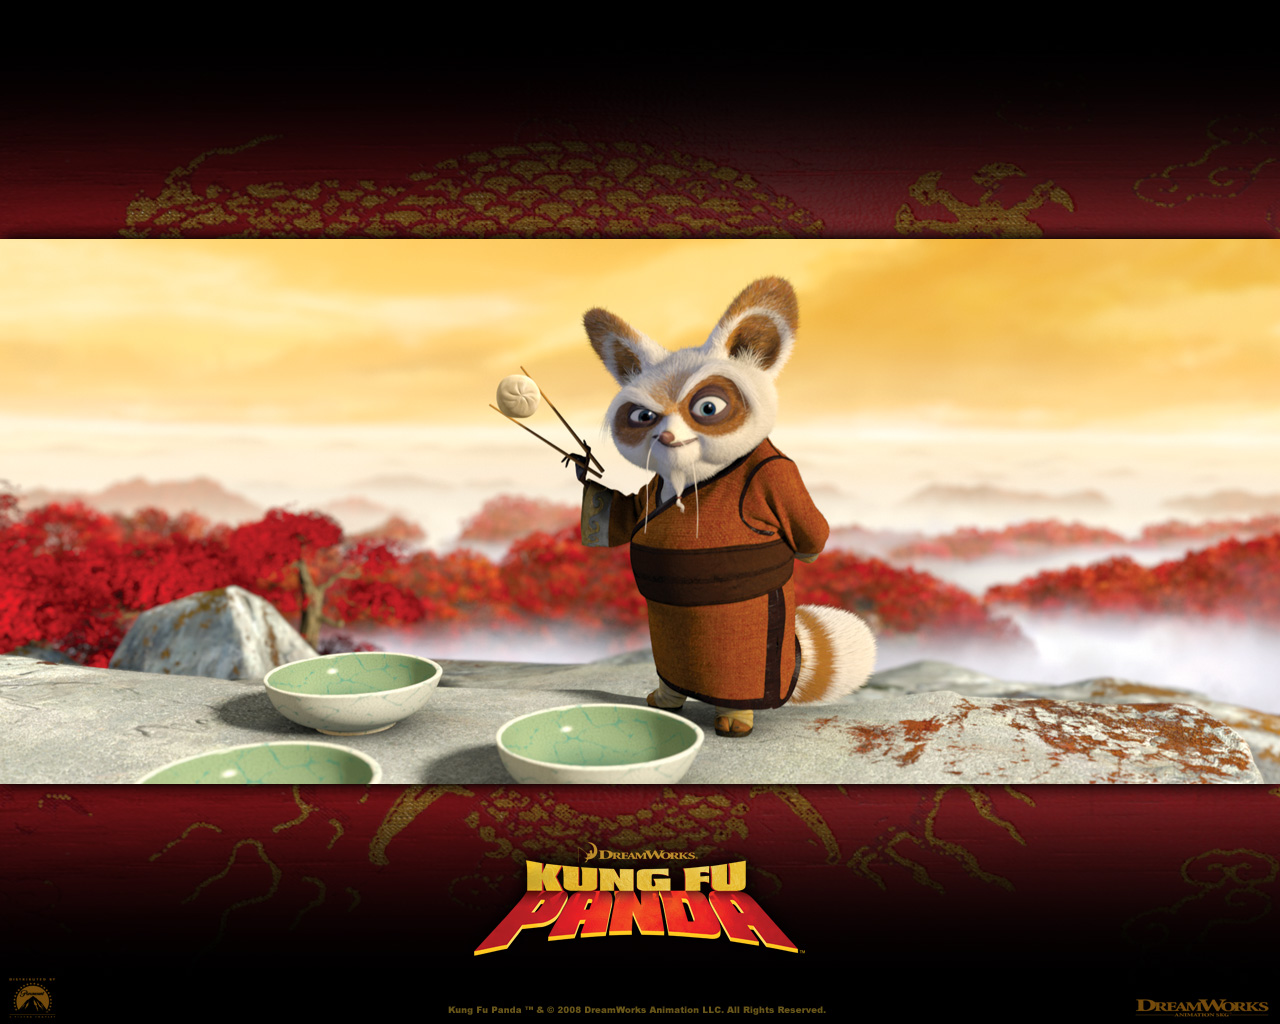 Kung fu panda iphone wallpaper - Master Shifu The Red Panda From Kung Fu Panda Movie Wallpaper Click Picture For High Resolution Hd Wallpaper